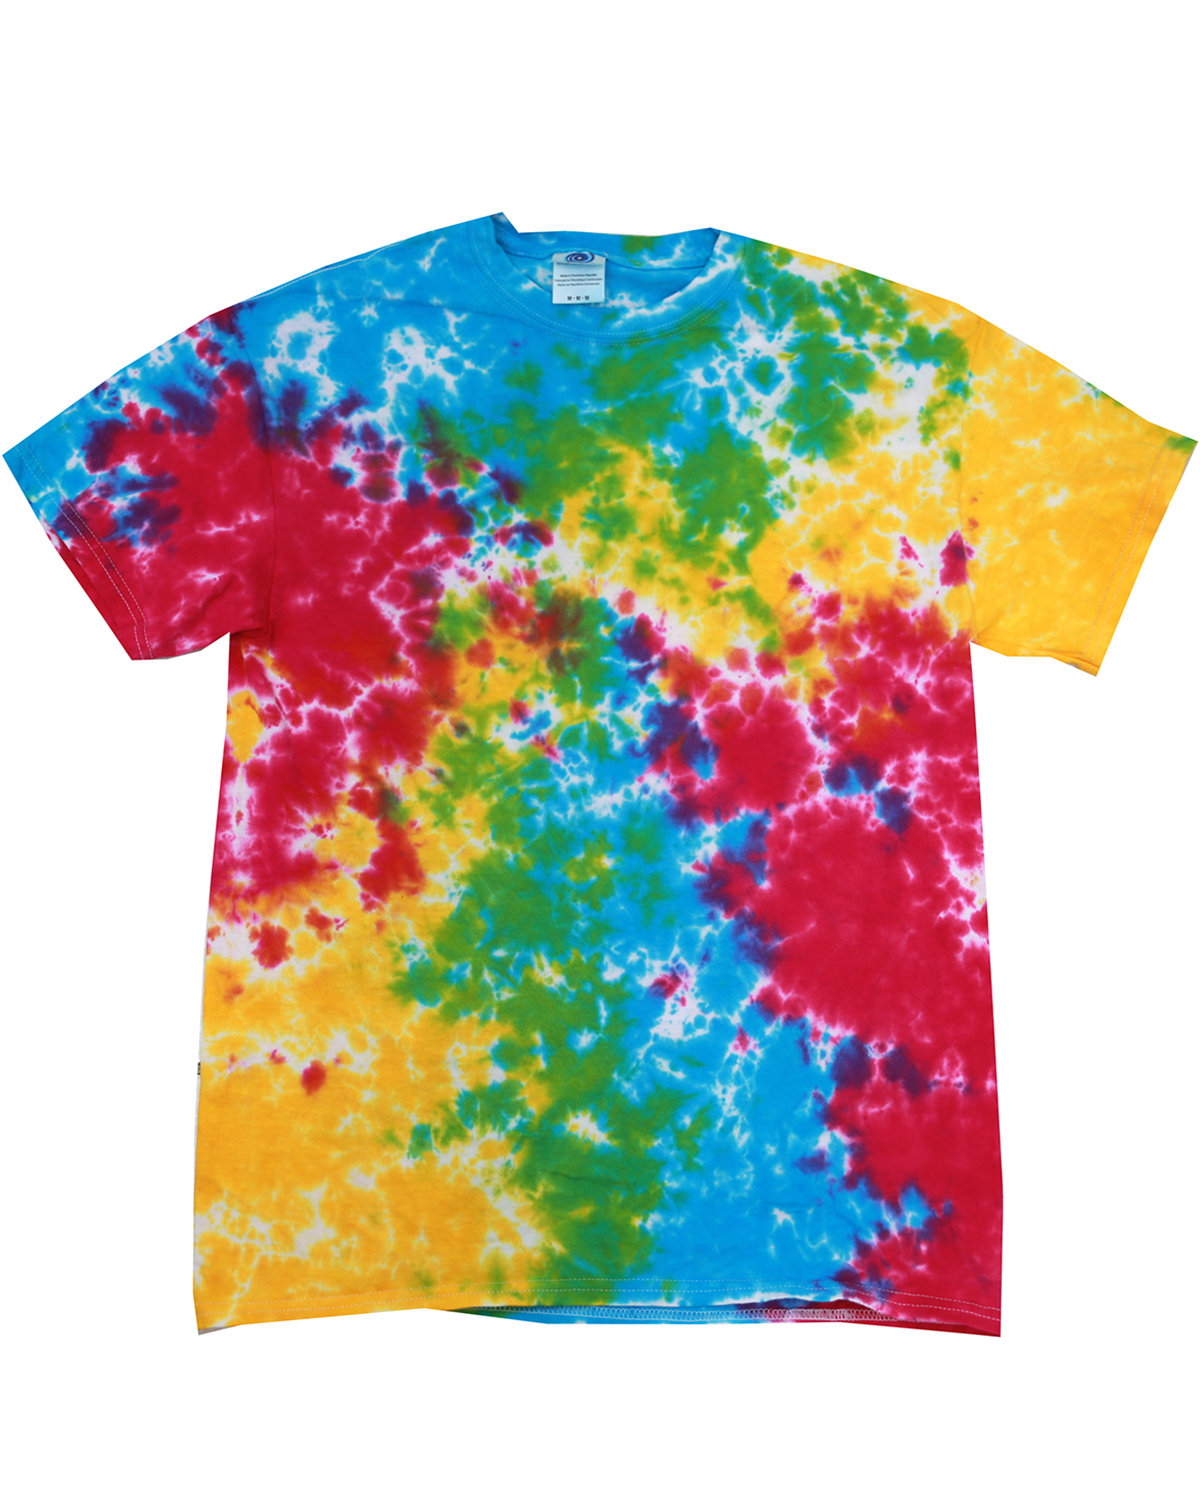 Tie-Dye Adult 5.4 oz., 100% Cotton T-Shirt MULTI RAINBOW